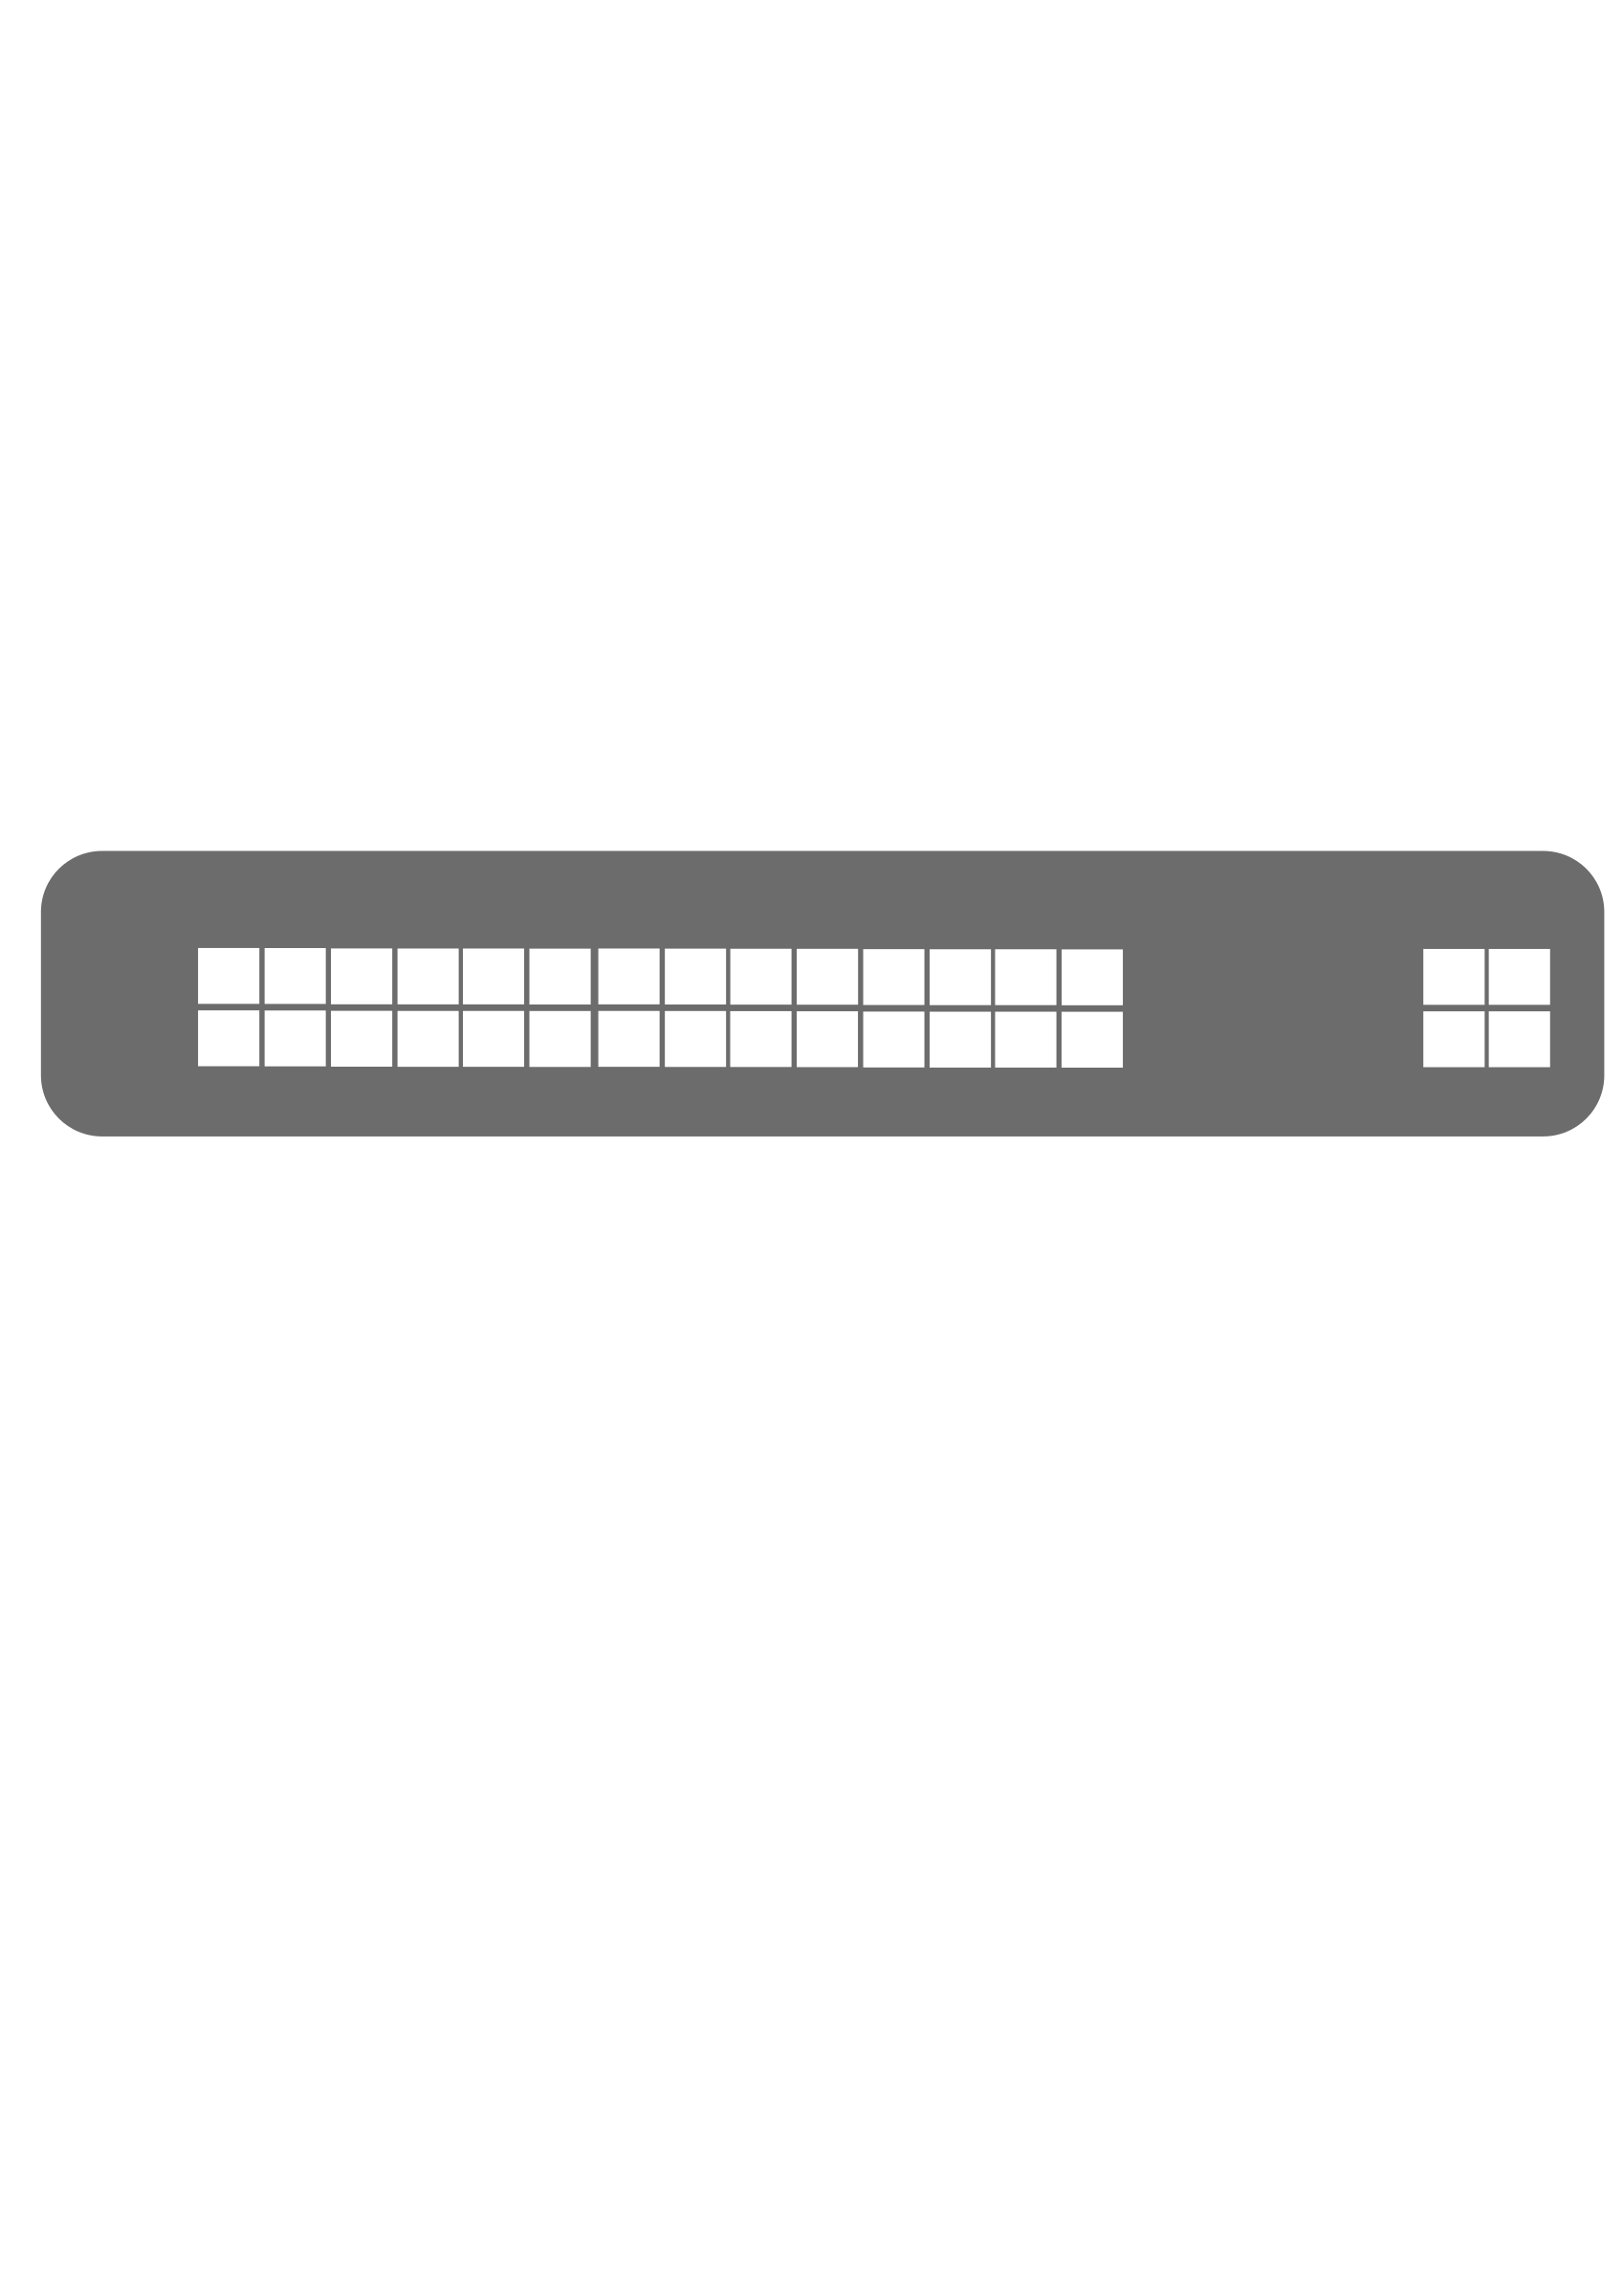 Icon: Network Switch Generic - Grey by mrjeremiahross